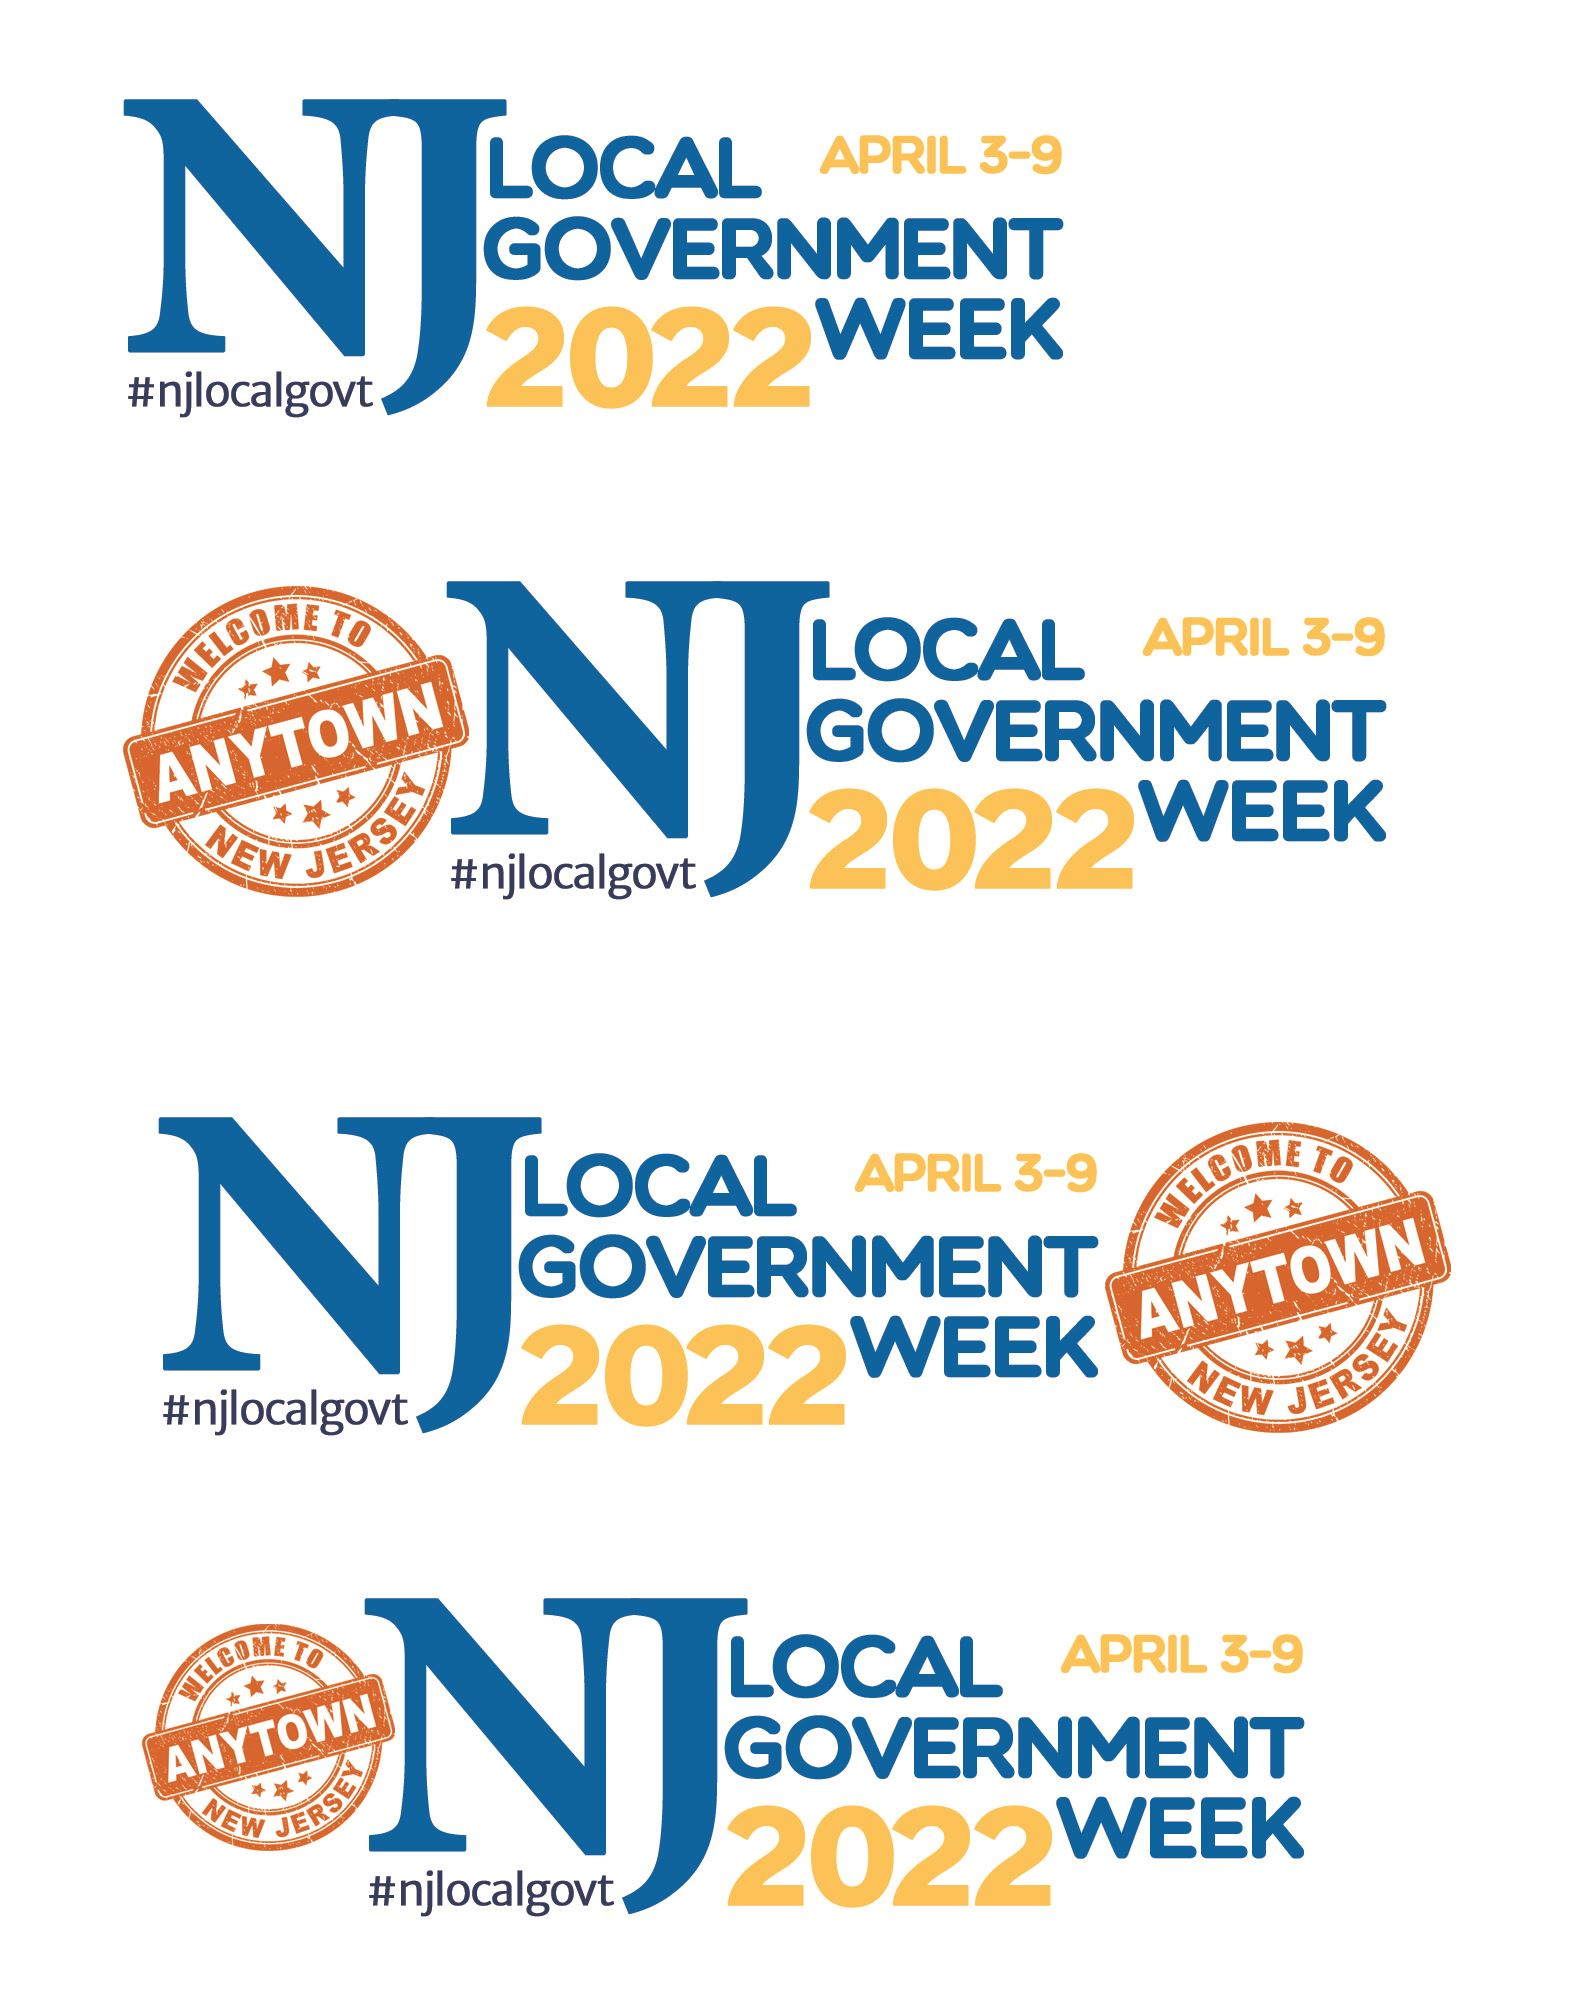 NJ Local Government Week